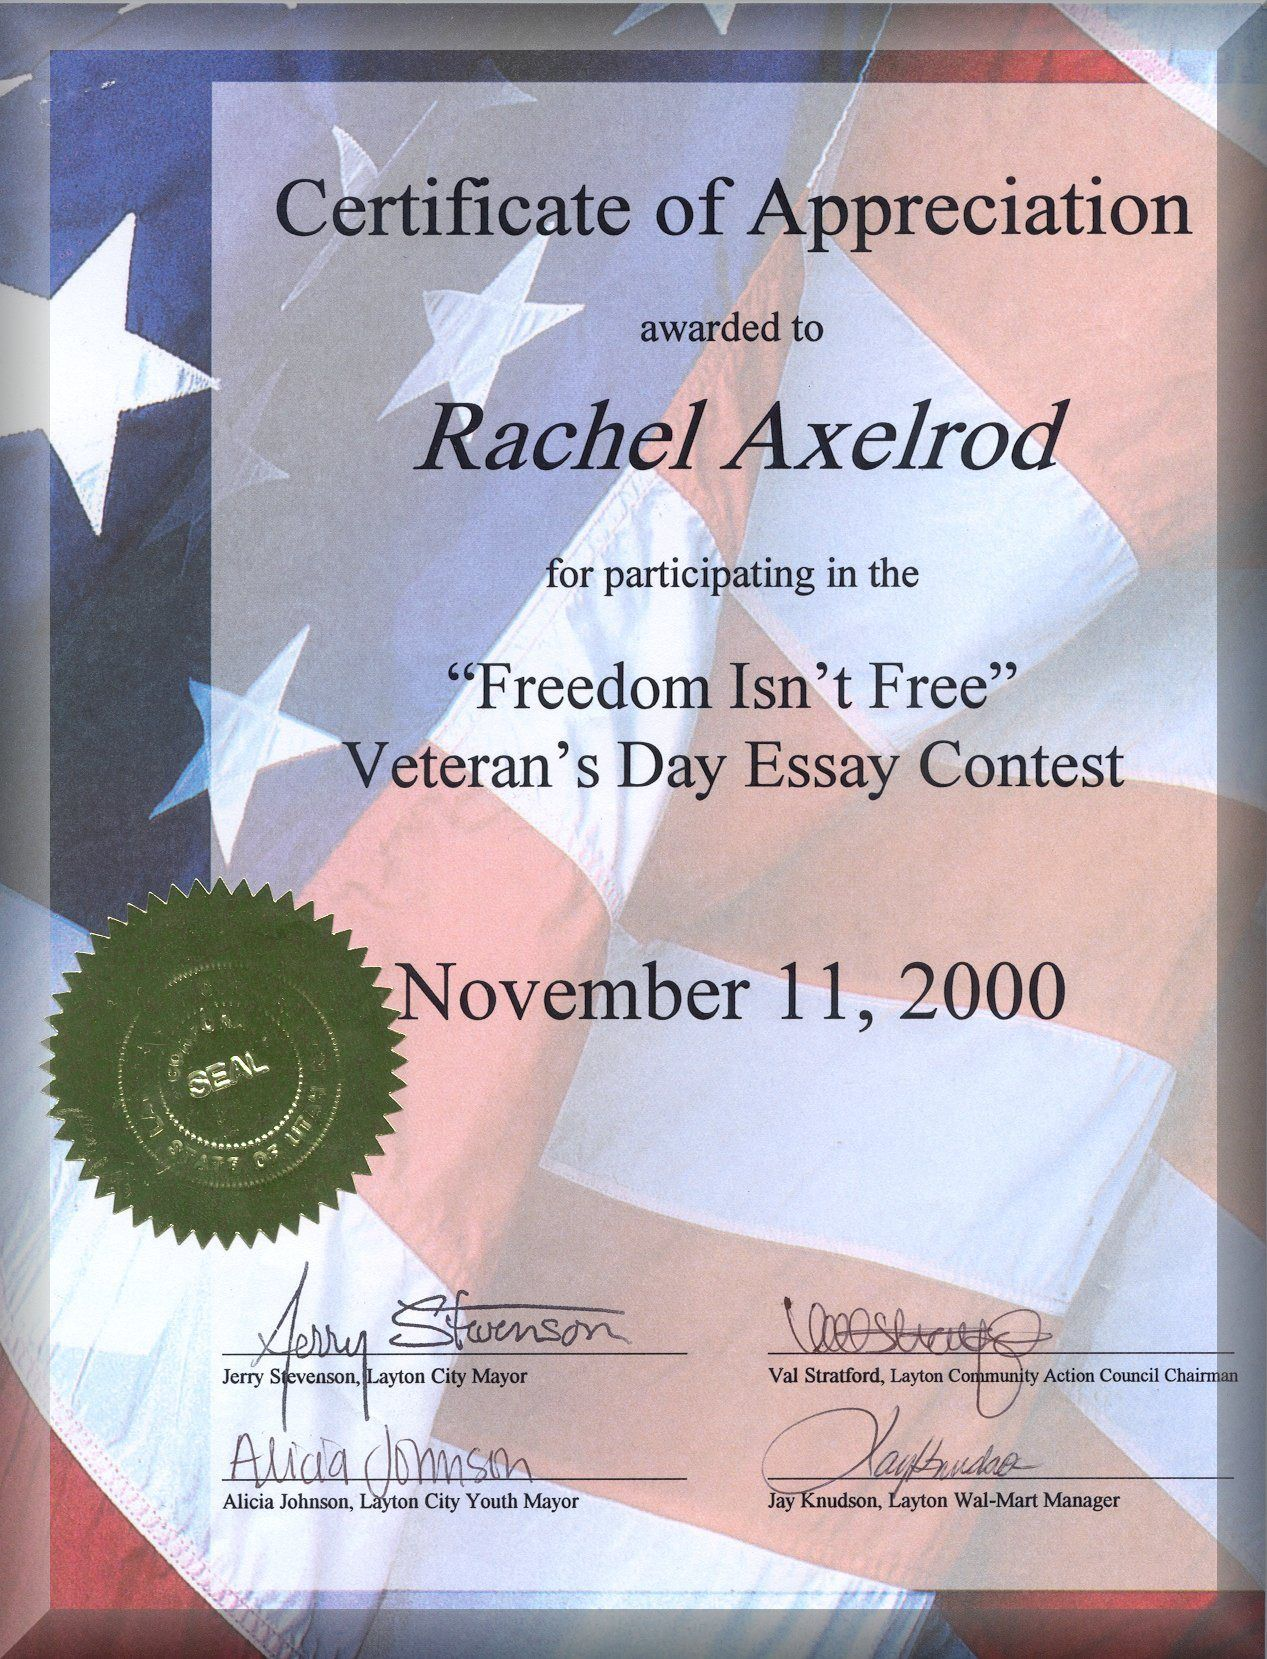 Veteran certificate of appreciation printable related pictures veteran certificate of appreciation printable related pictures award free award certificate templates pictures yadclub